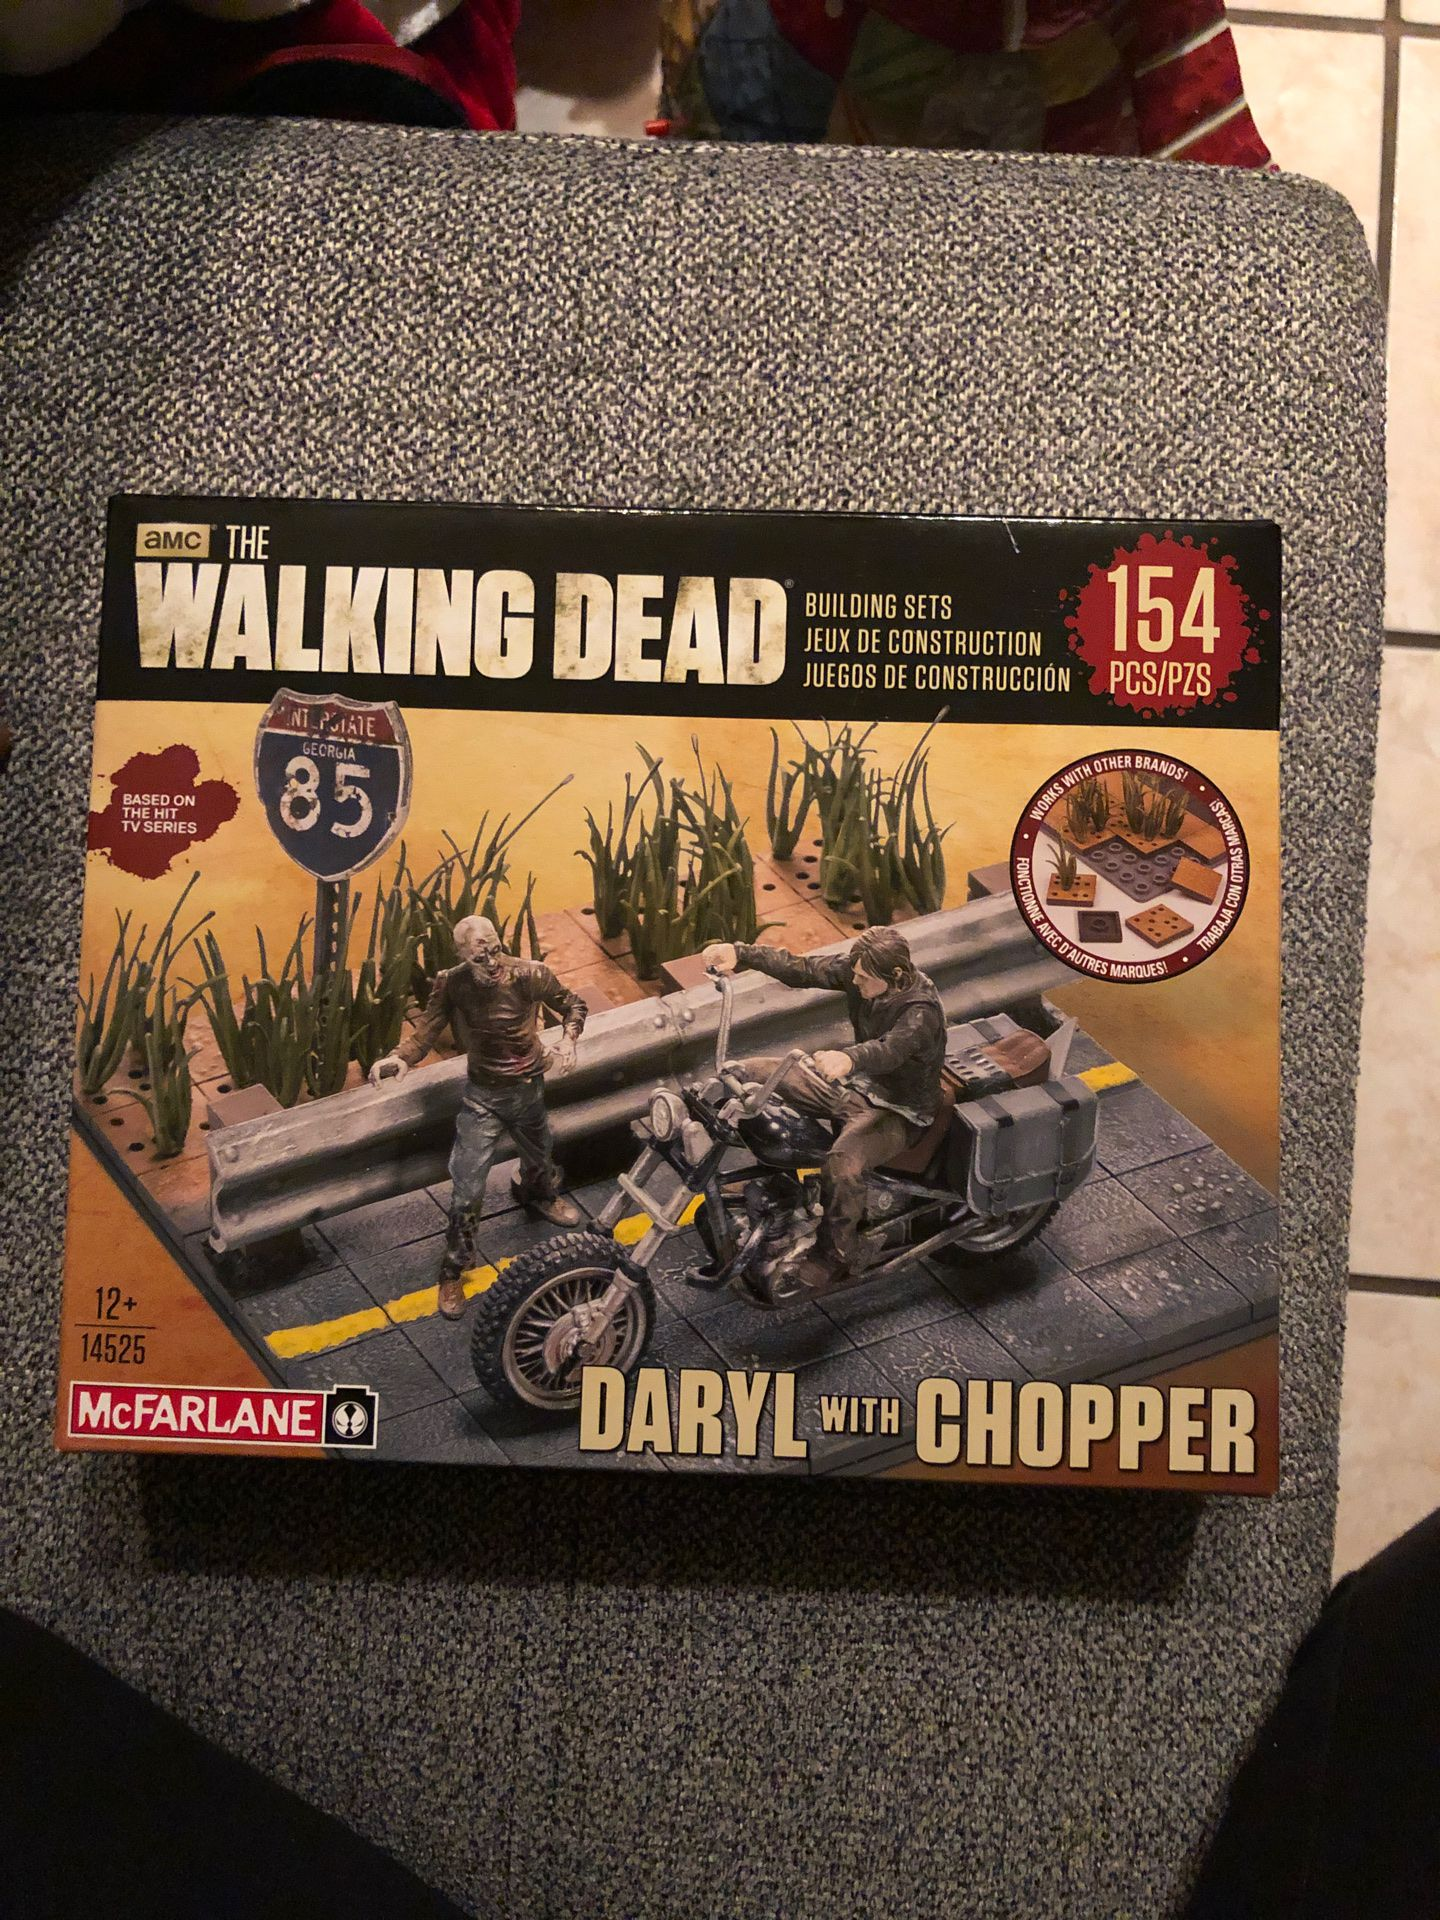 The walking dead Daryl with chopper